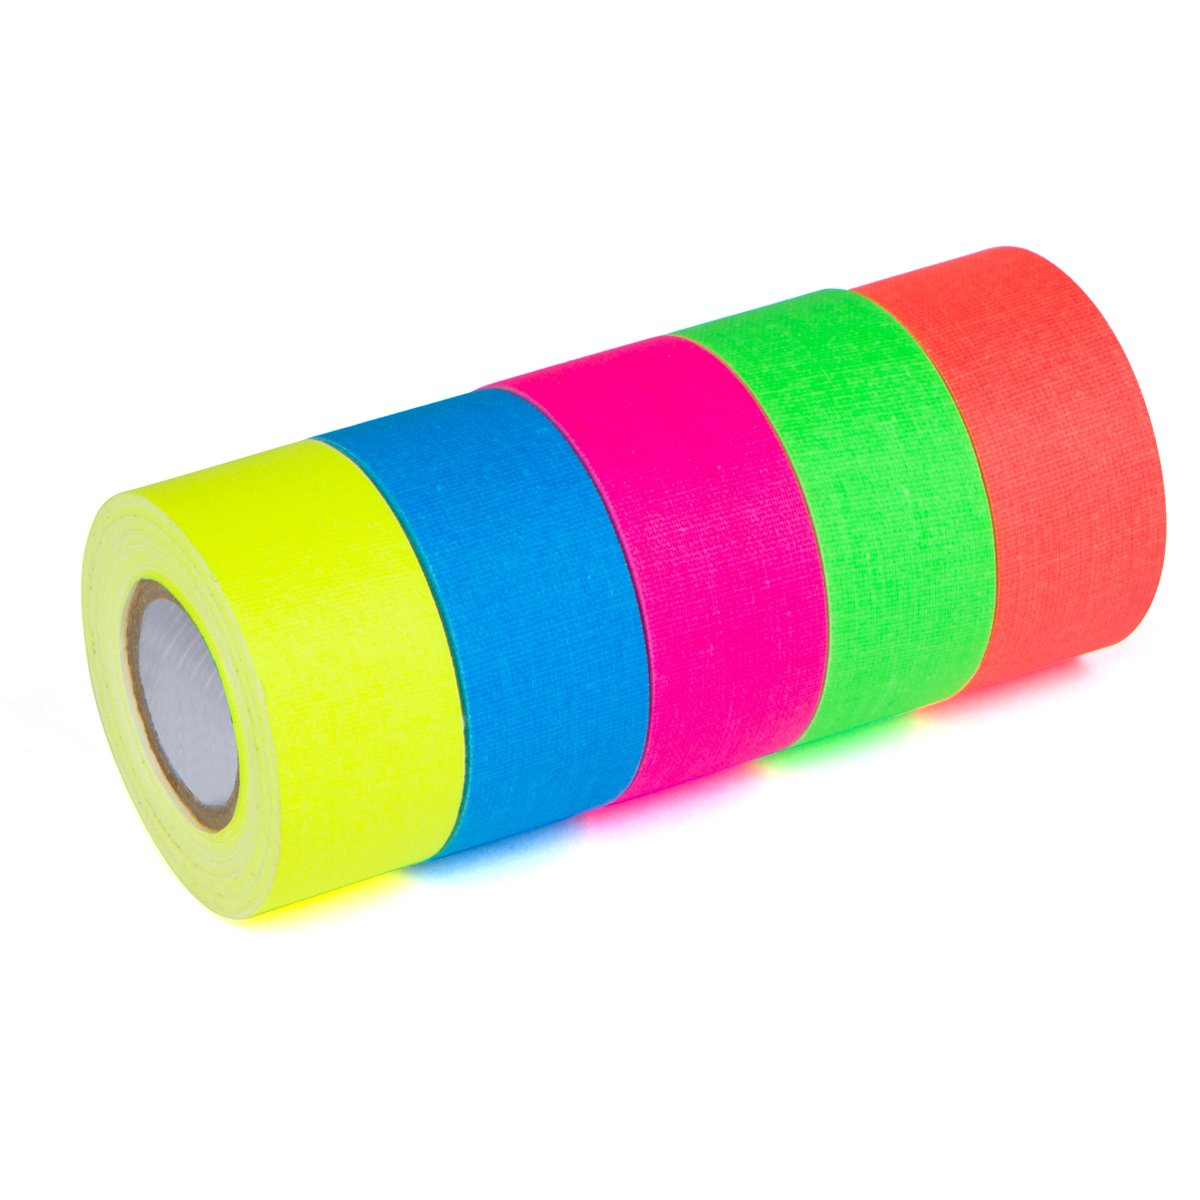 1 in x 18 ft - Wide 5-Pack UV Blacklight Reactive Fluorescent//Neon Party Tape